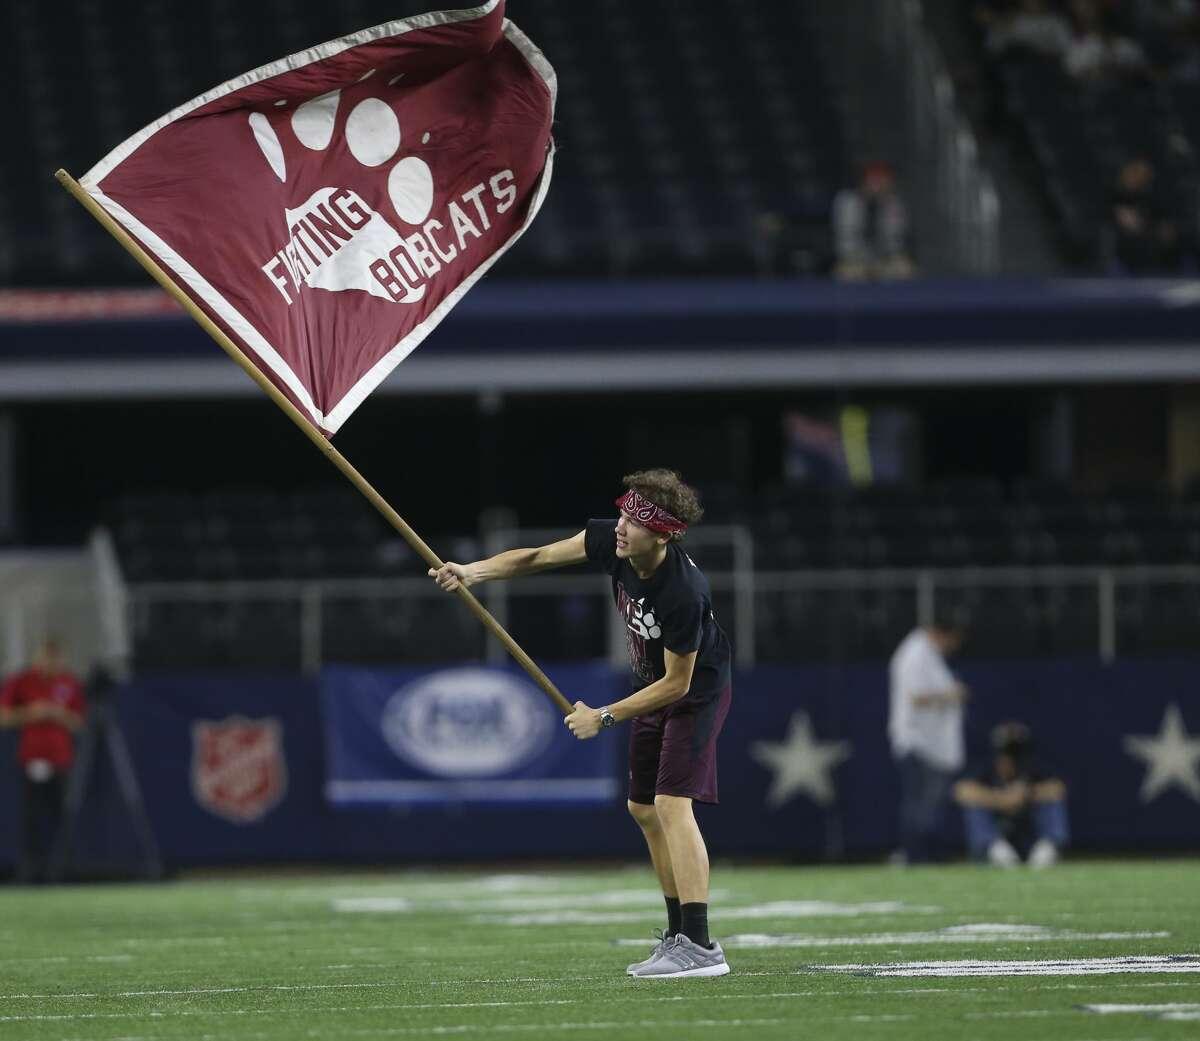 Cy-Fair's flag bearer celebrates the team's touchdown during the third quarter of the Class 6A Division II State Championship Game against Waco Midway at AT&T Stadium on Saturday, Dec. 23, 2017, in Arlington. ( Yi-Chin Lee / Houston Chronicle )